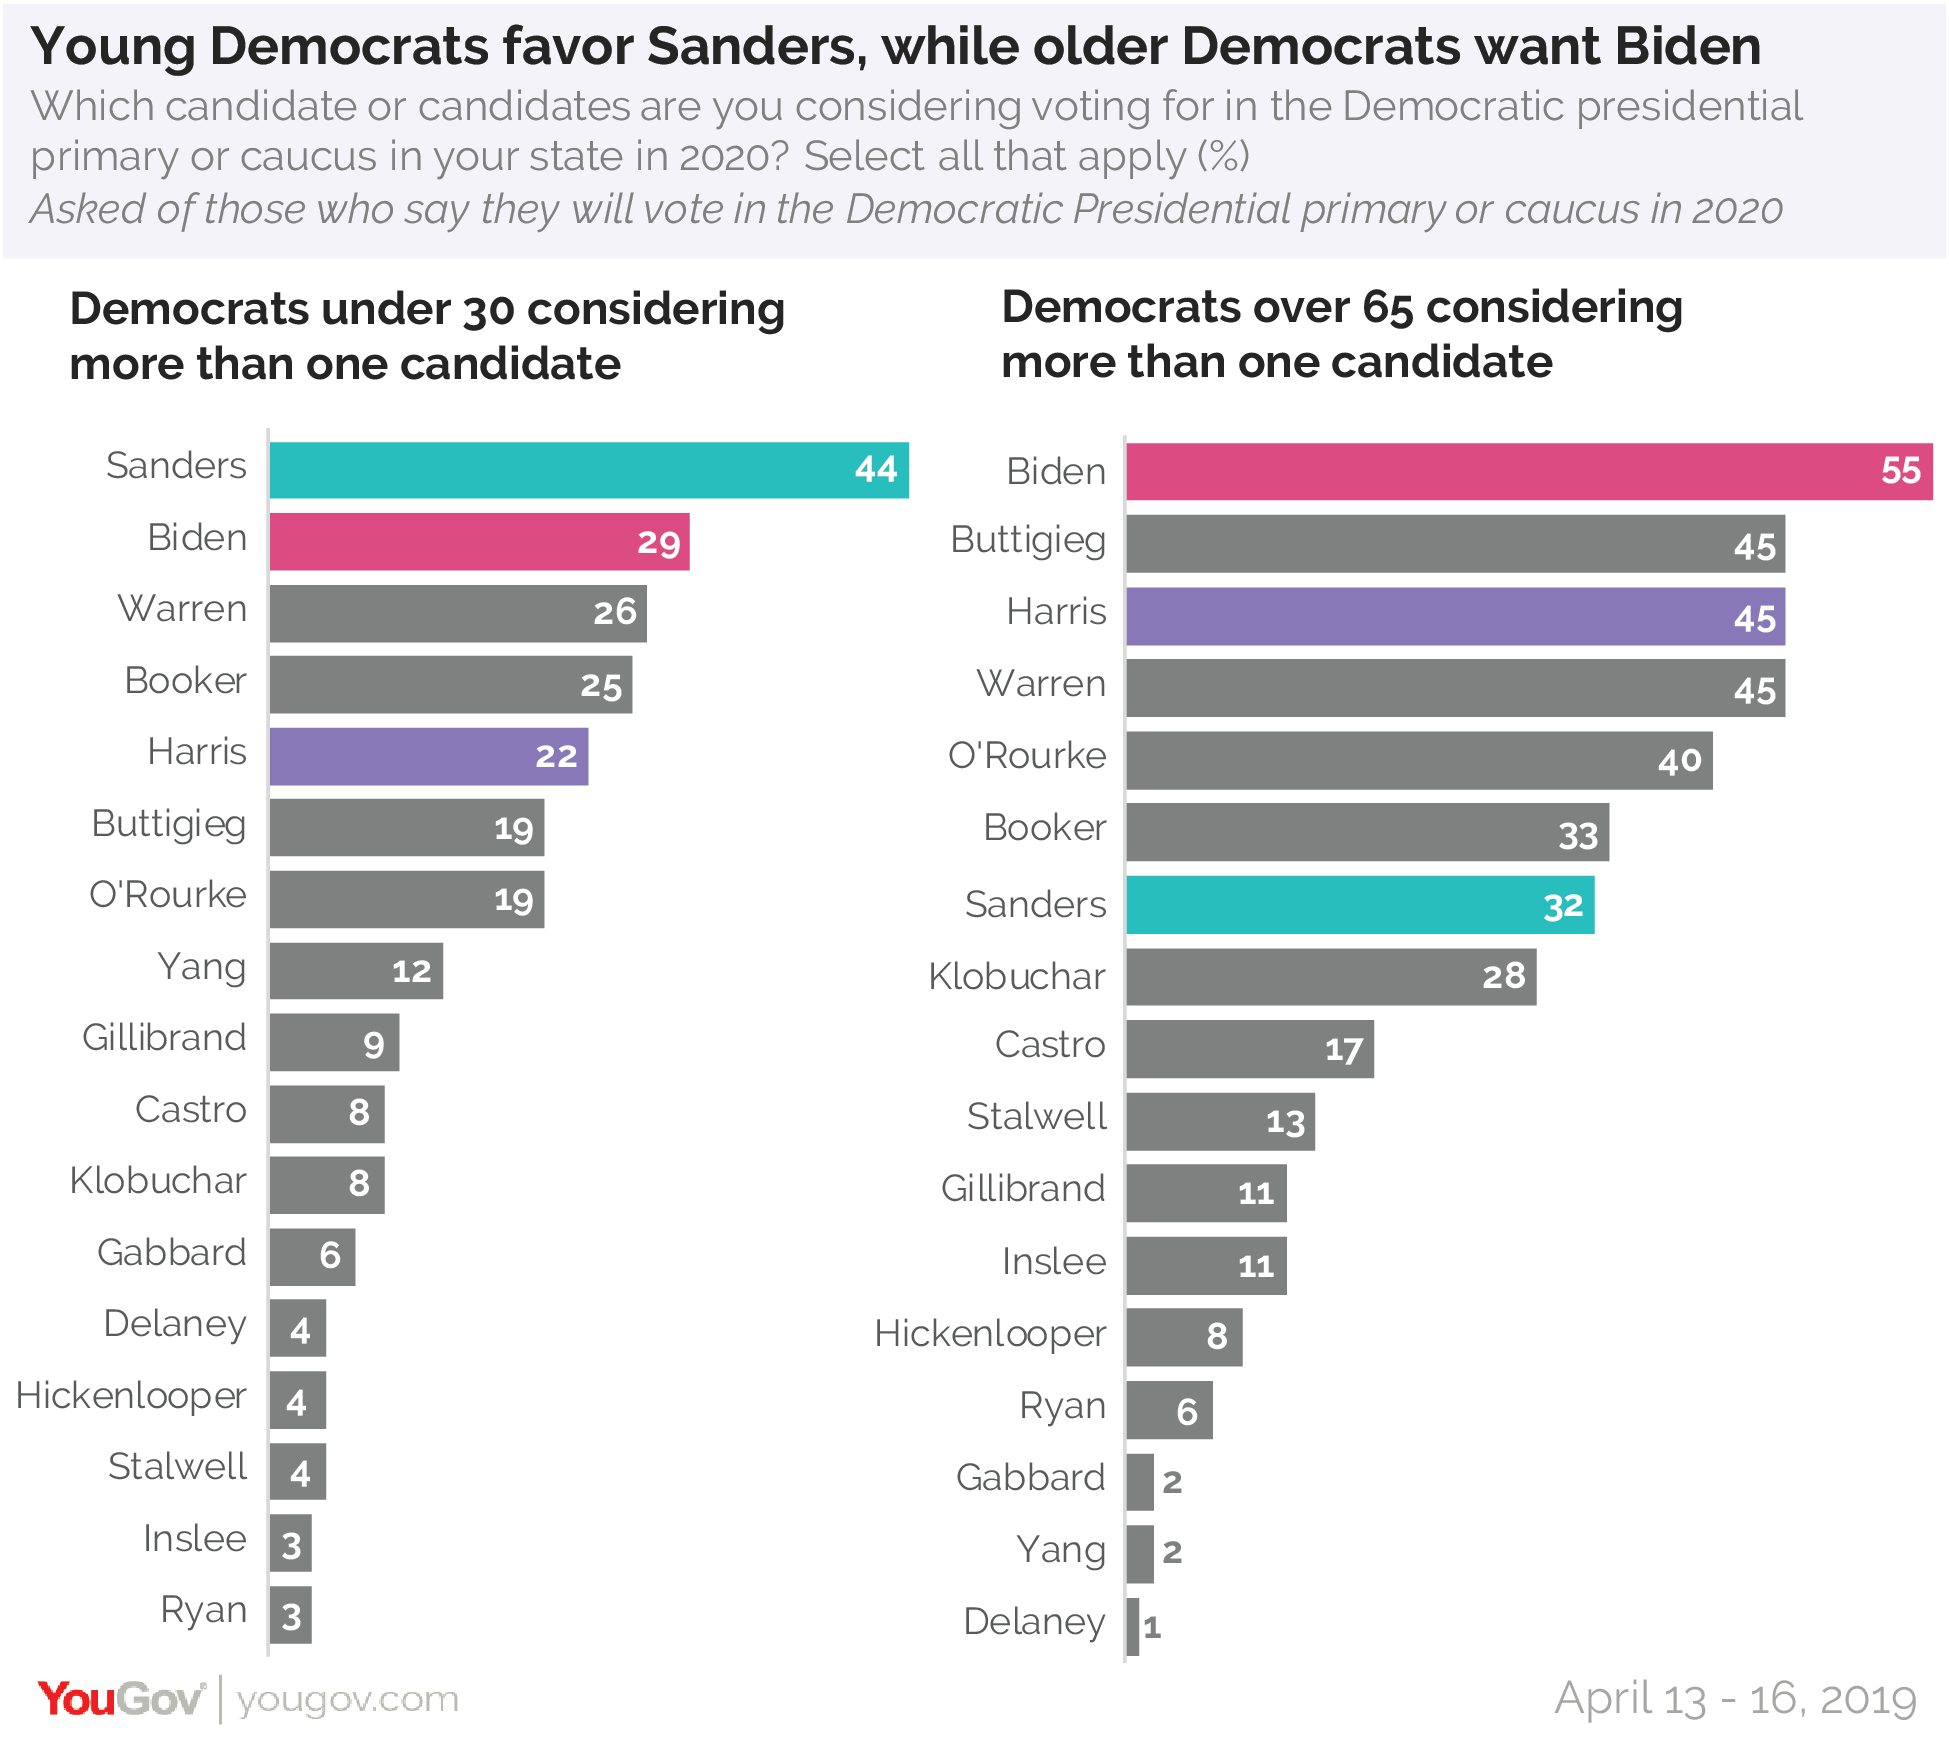 Young Democrats favor Sanders, while older Democrats want Biden